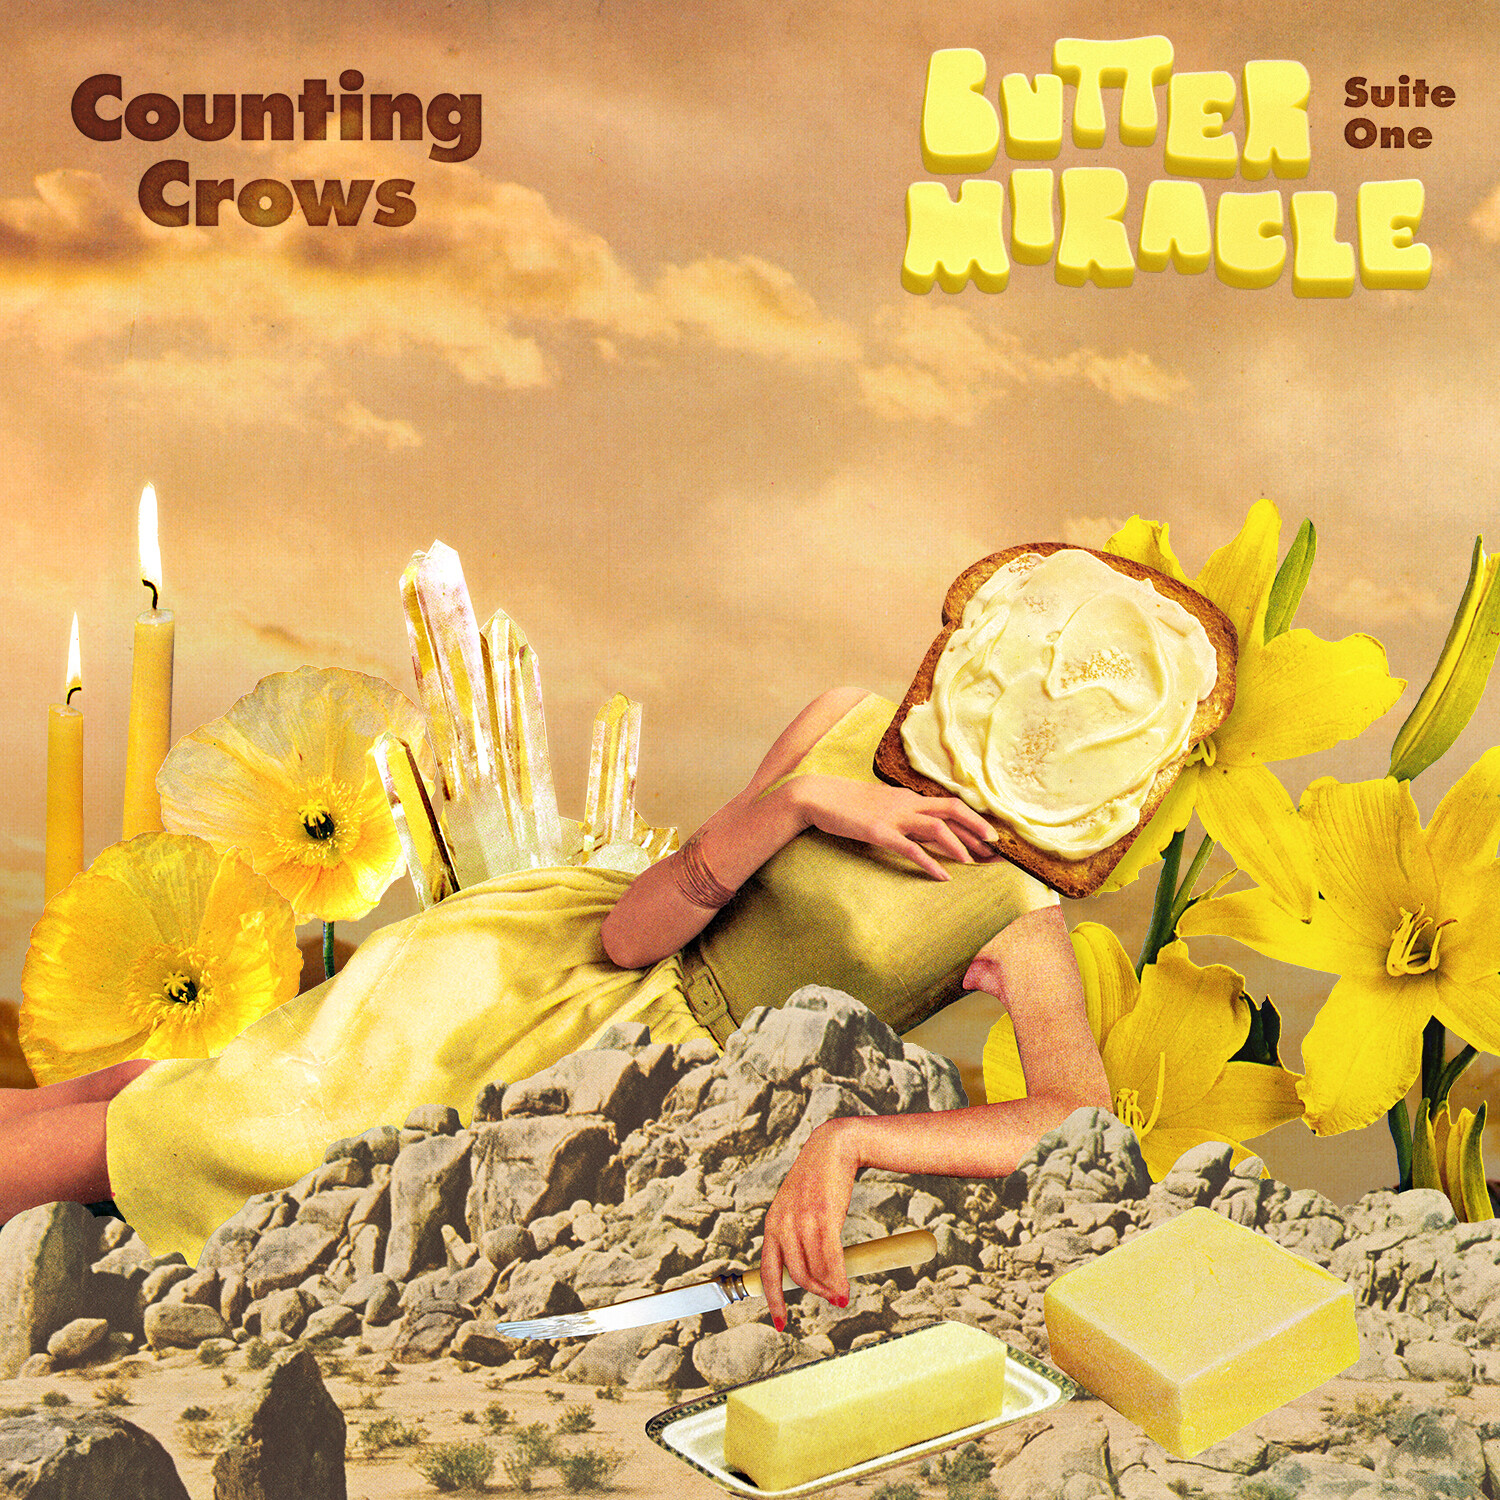 Counting Crows / Butter